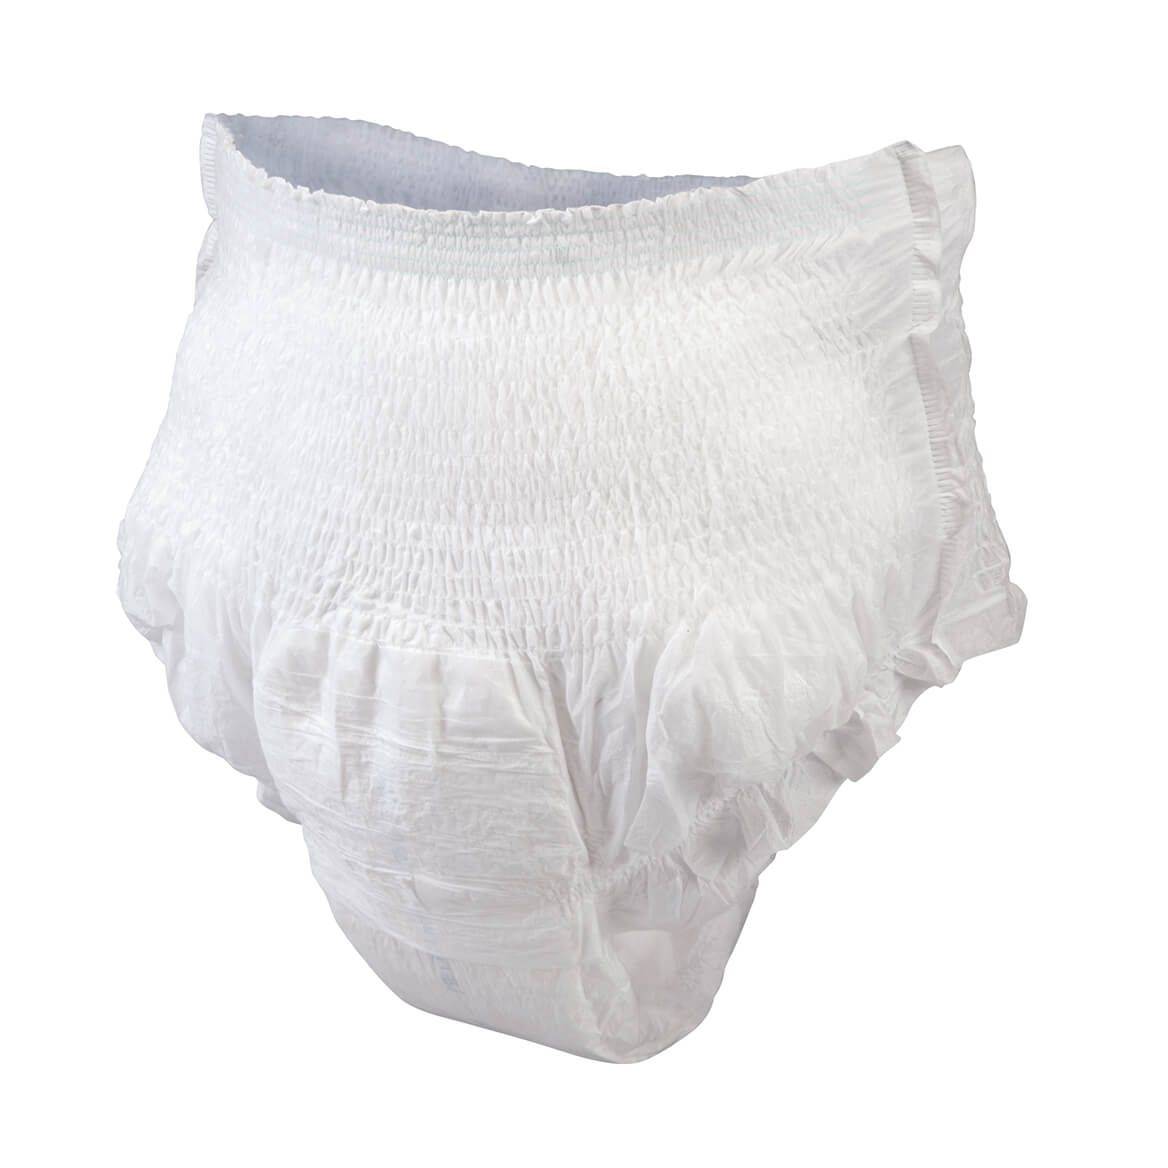 Unisex Overnight Protective Underwear Trial Pack-357311